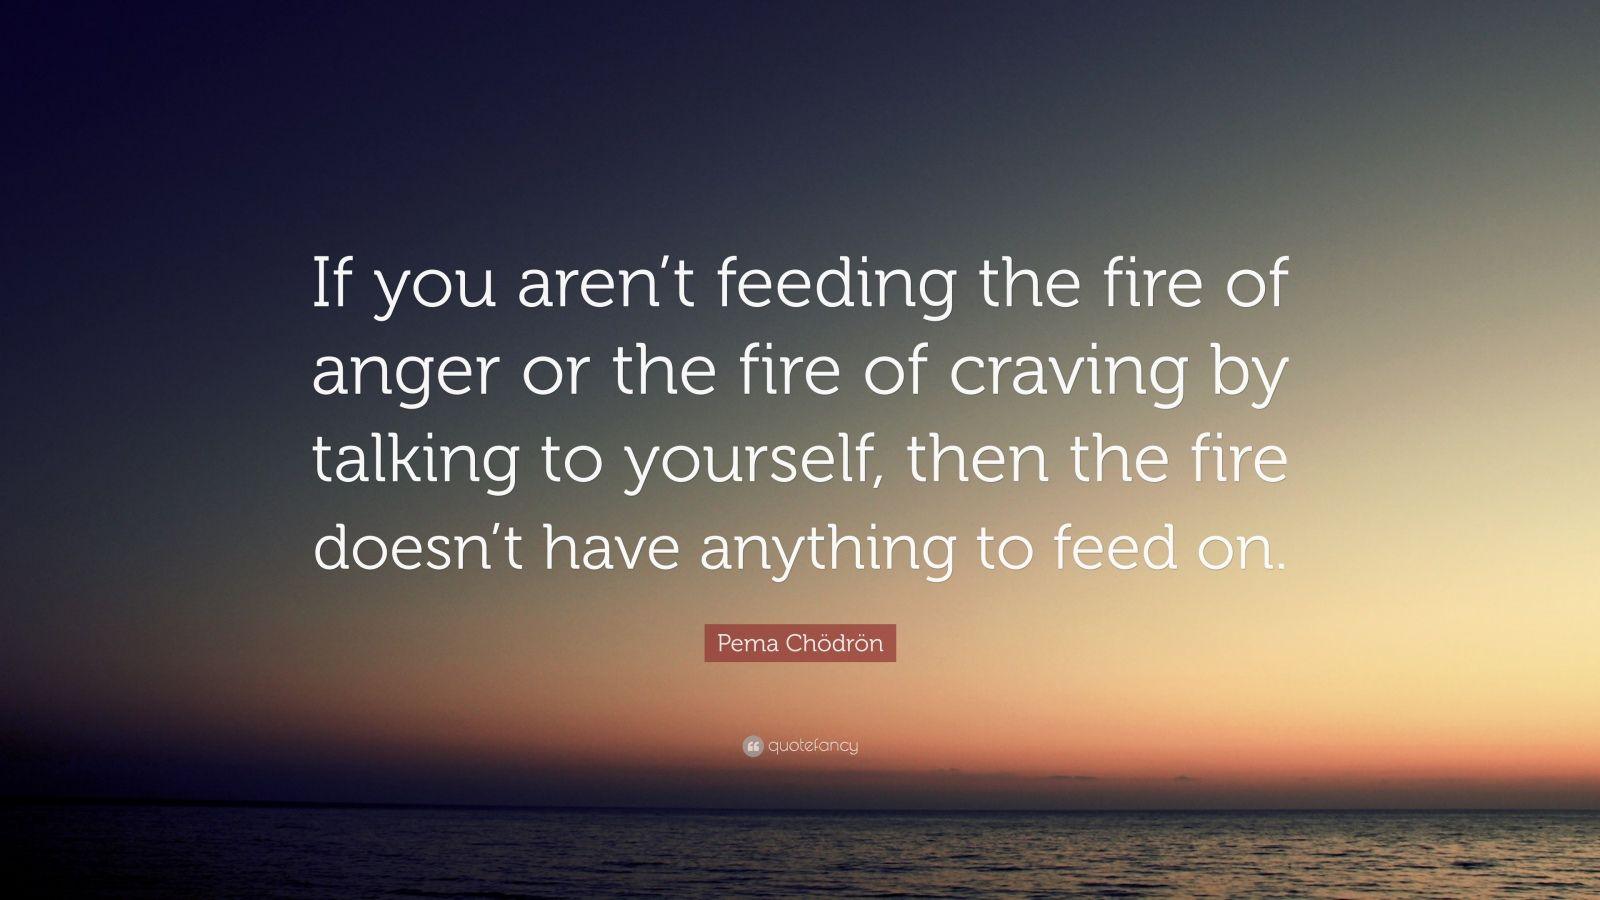 "Pema Chödrön Quote: ""If you aren't feeding the fire of anger or the fire of craving by talking to yourself, then the fire doesn't have anything to feed on."""